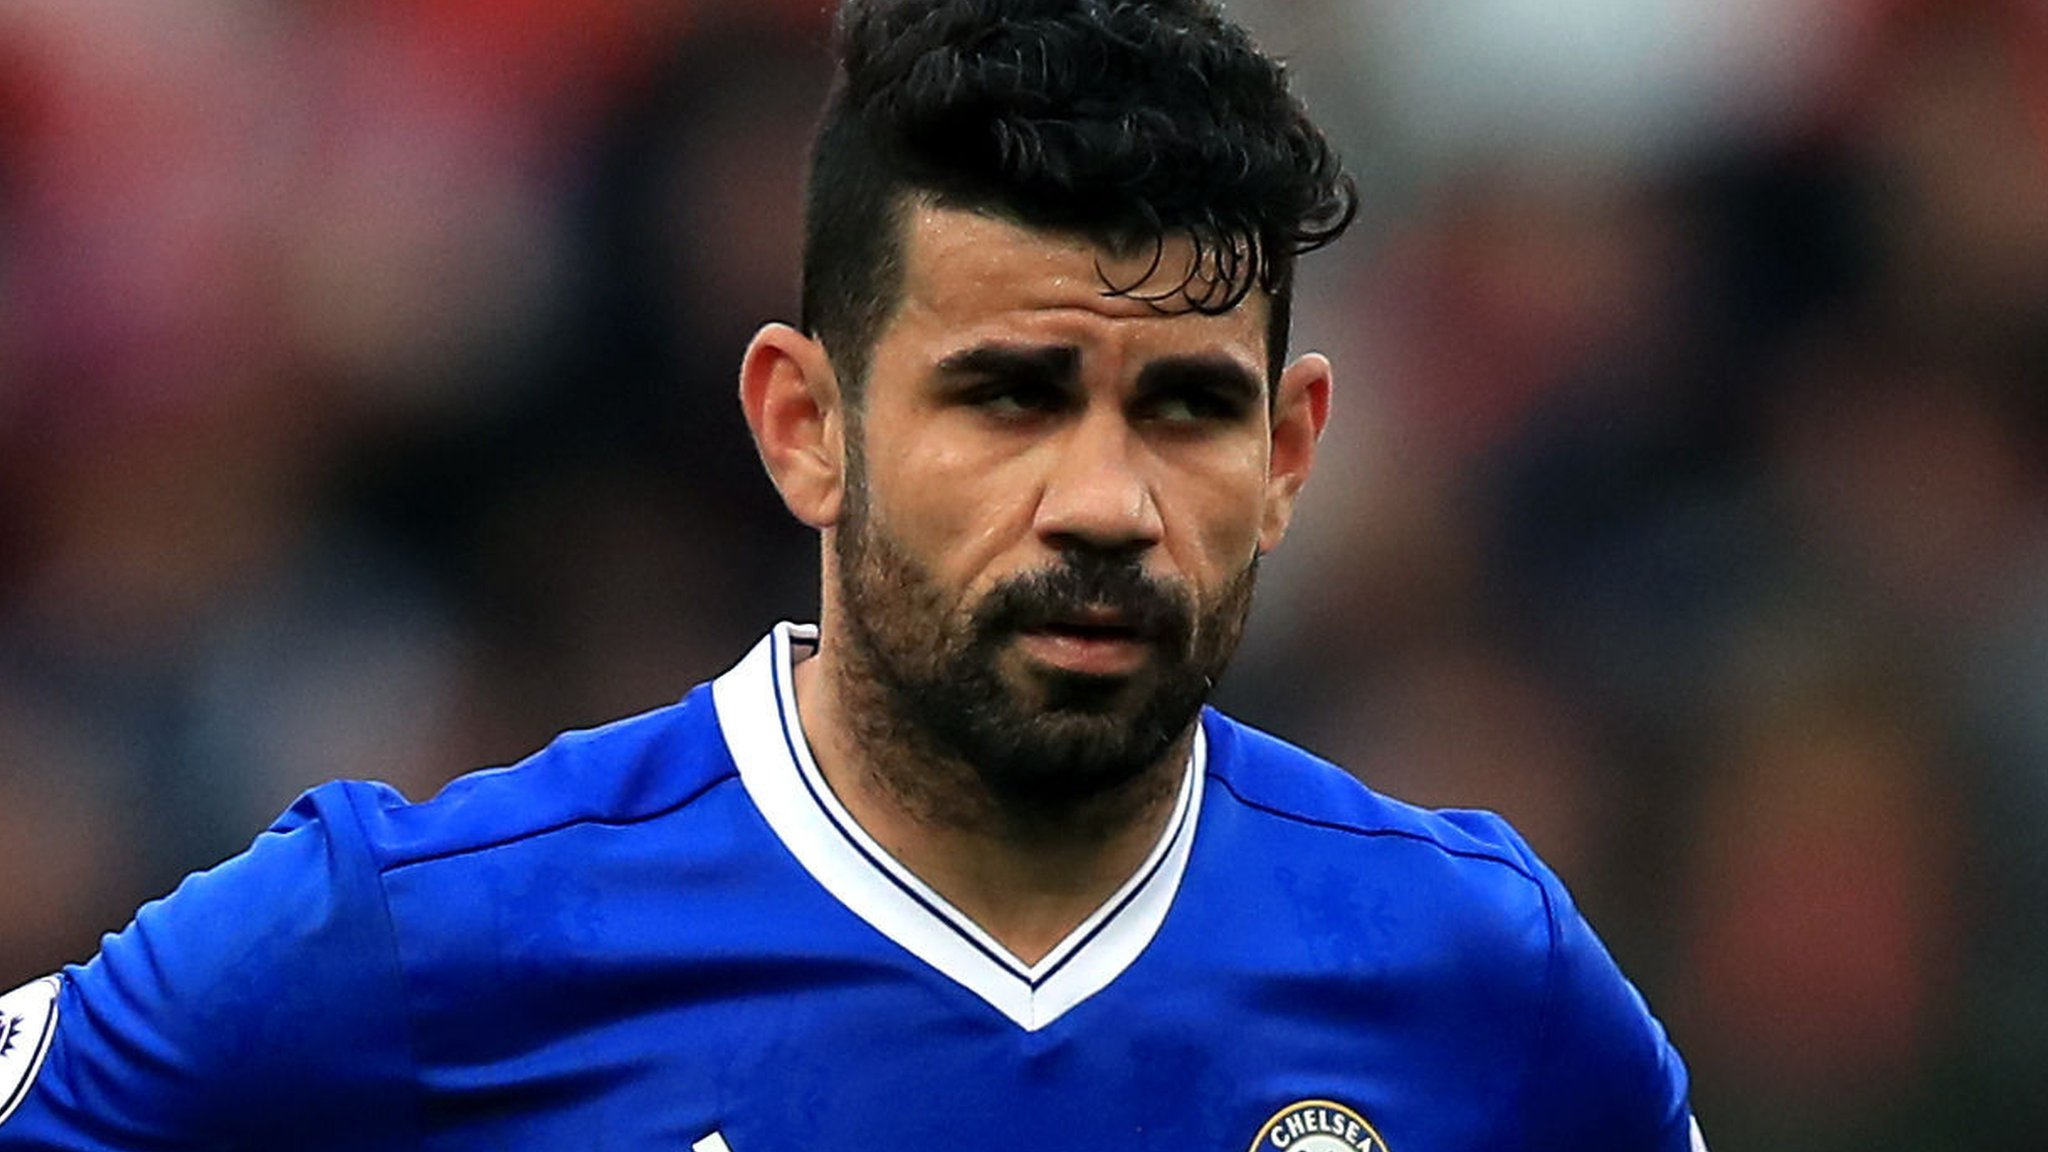 Costa told he could leave Chelsea back in January - Conte